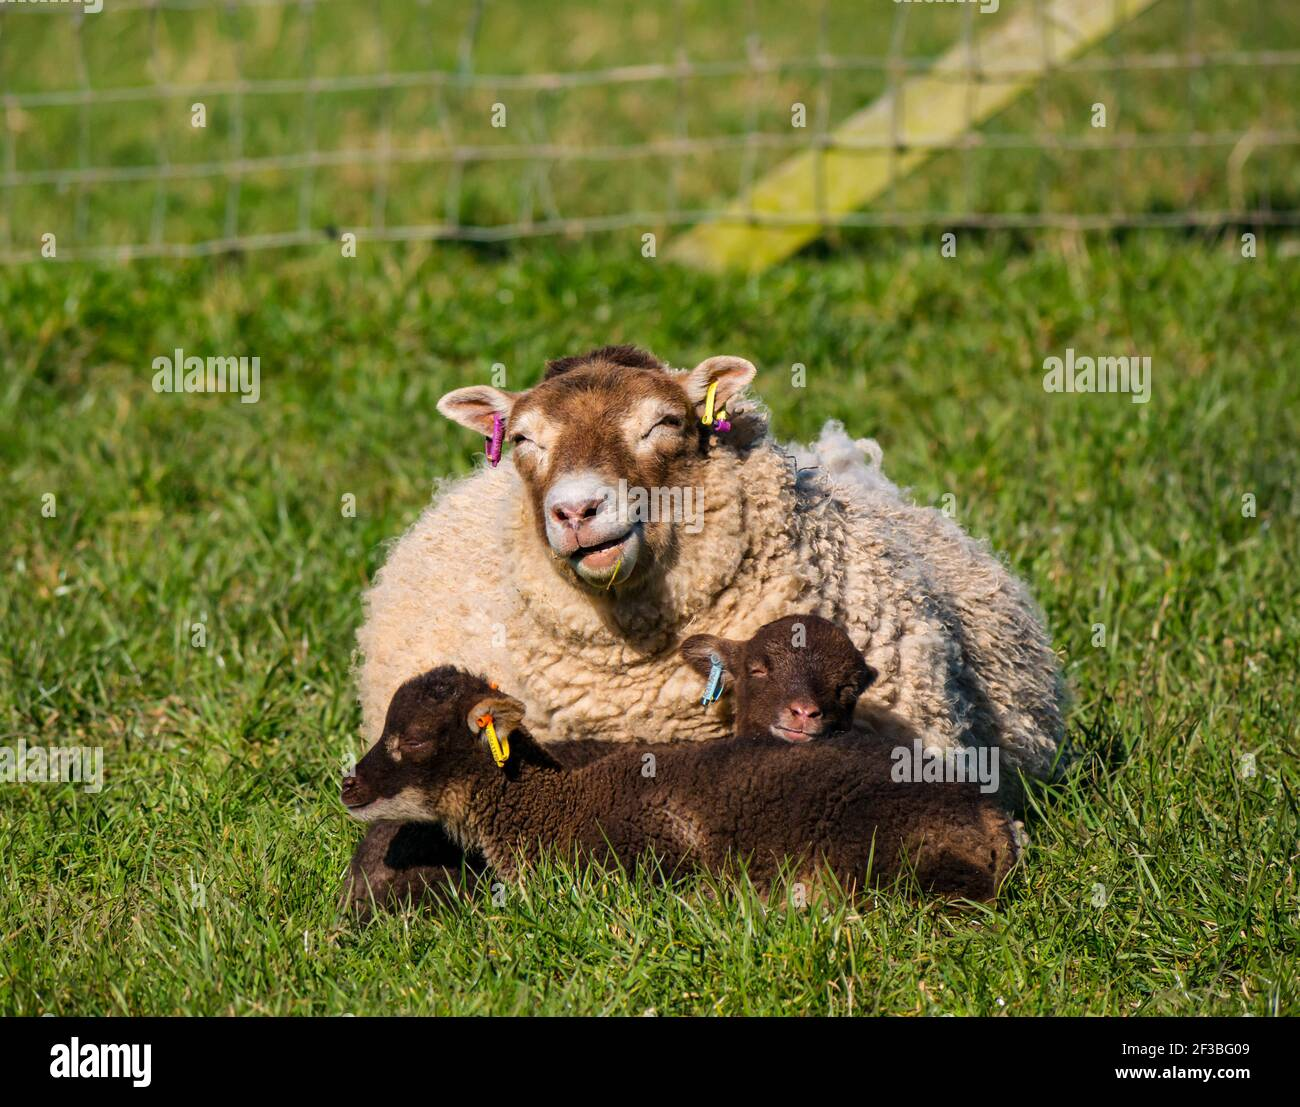 East Lothian, Scotland, United Kingdom, 16th March 2021. UK Weather: Spring lambs warm up lying in grass in the sunshine. These Shetland sheep lamb twins and their mother soak up the warmth of the sun as the ewe chews the cud in a grassy field but keeps one eye open to stay alert Stock Photo